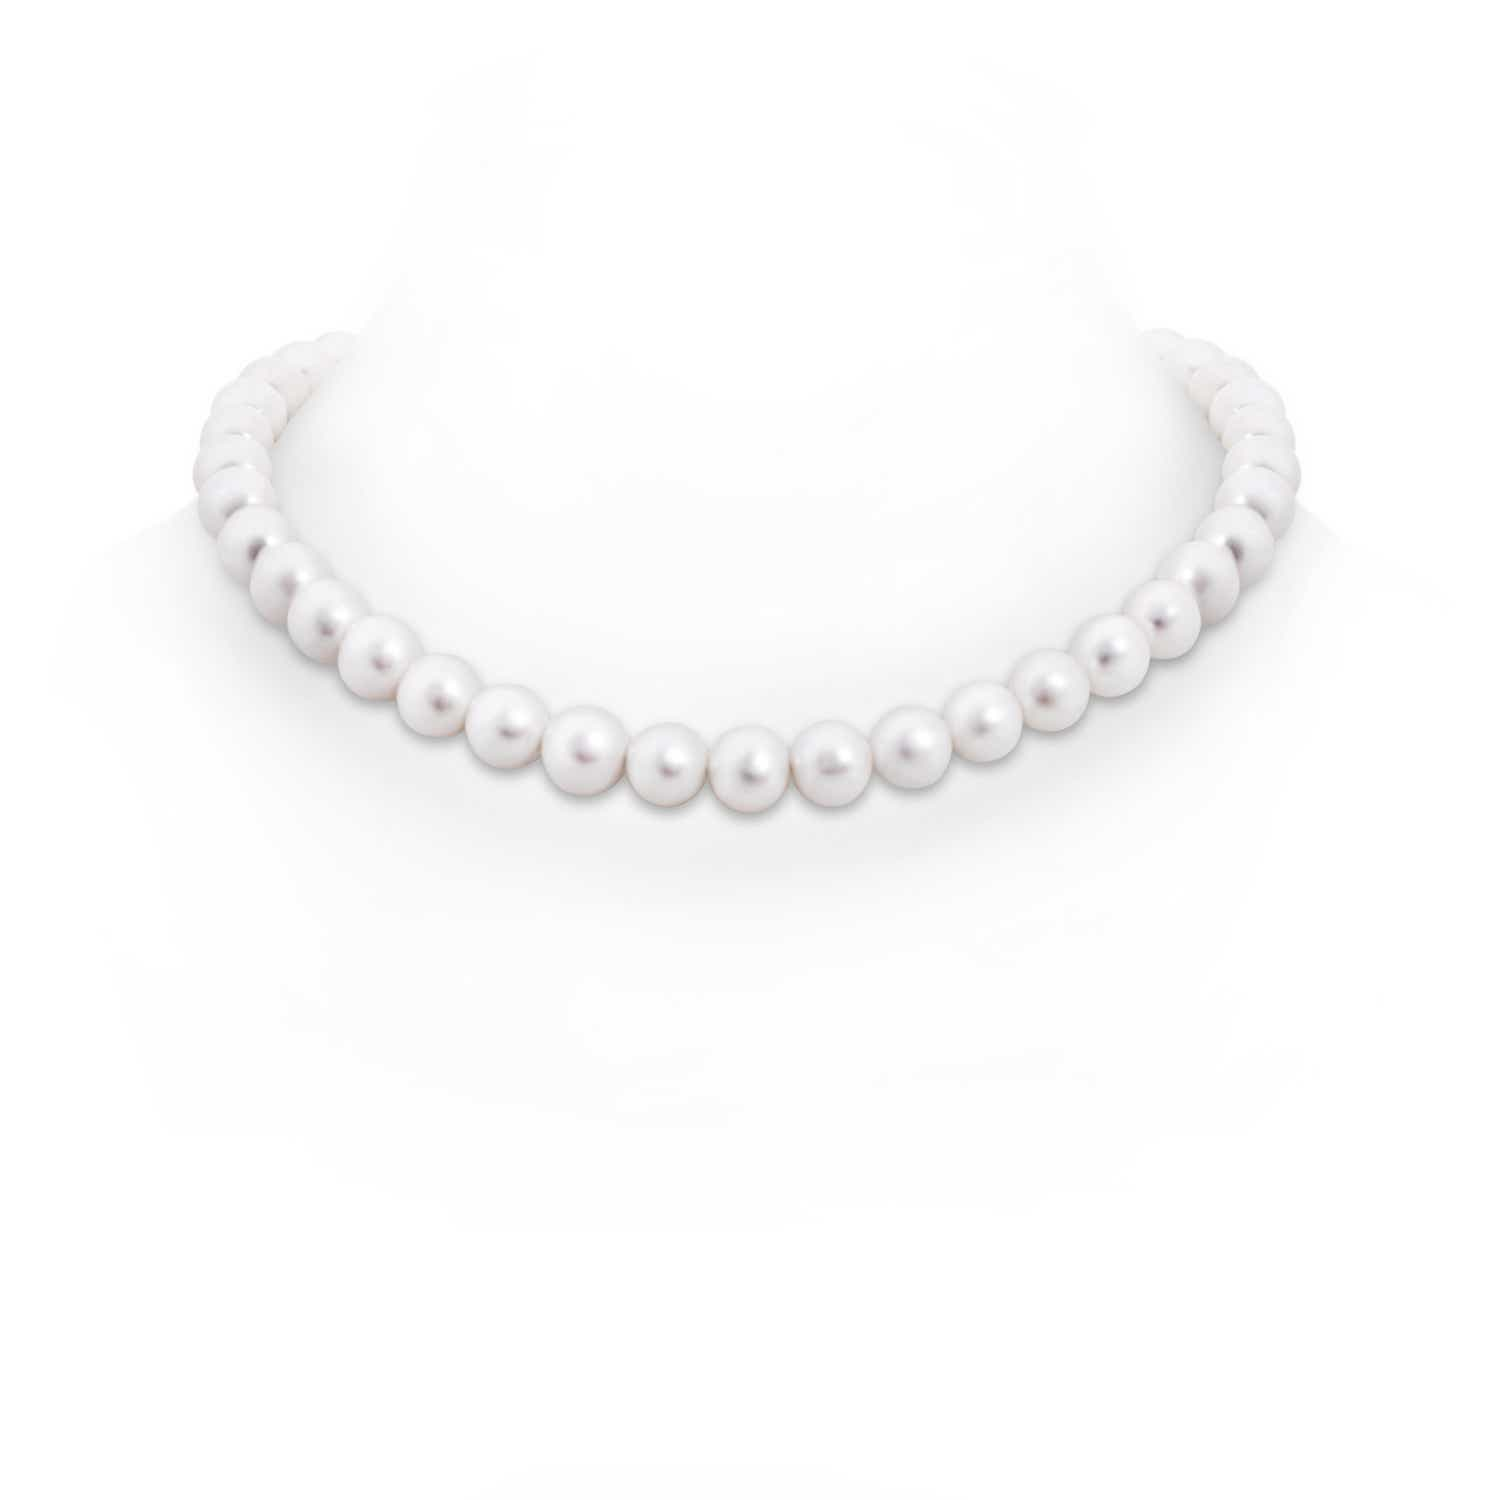 16 Freshwater Cultured Pearl Choker-Length Single Strand